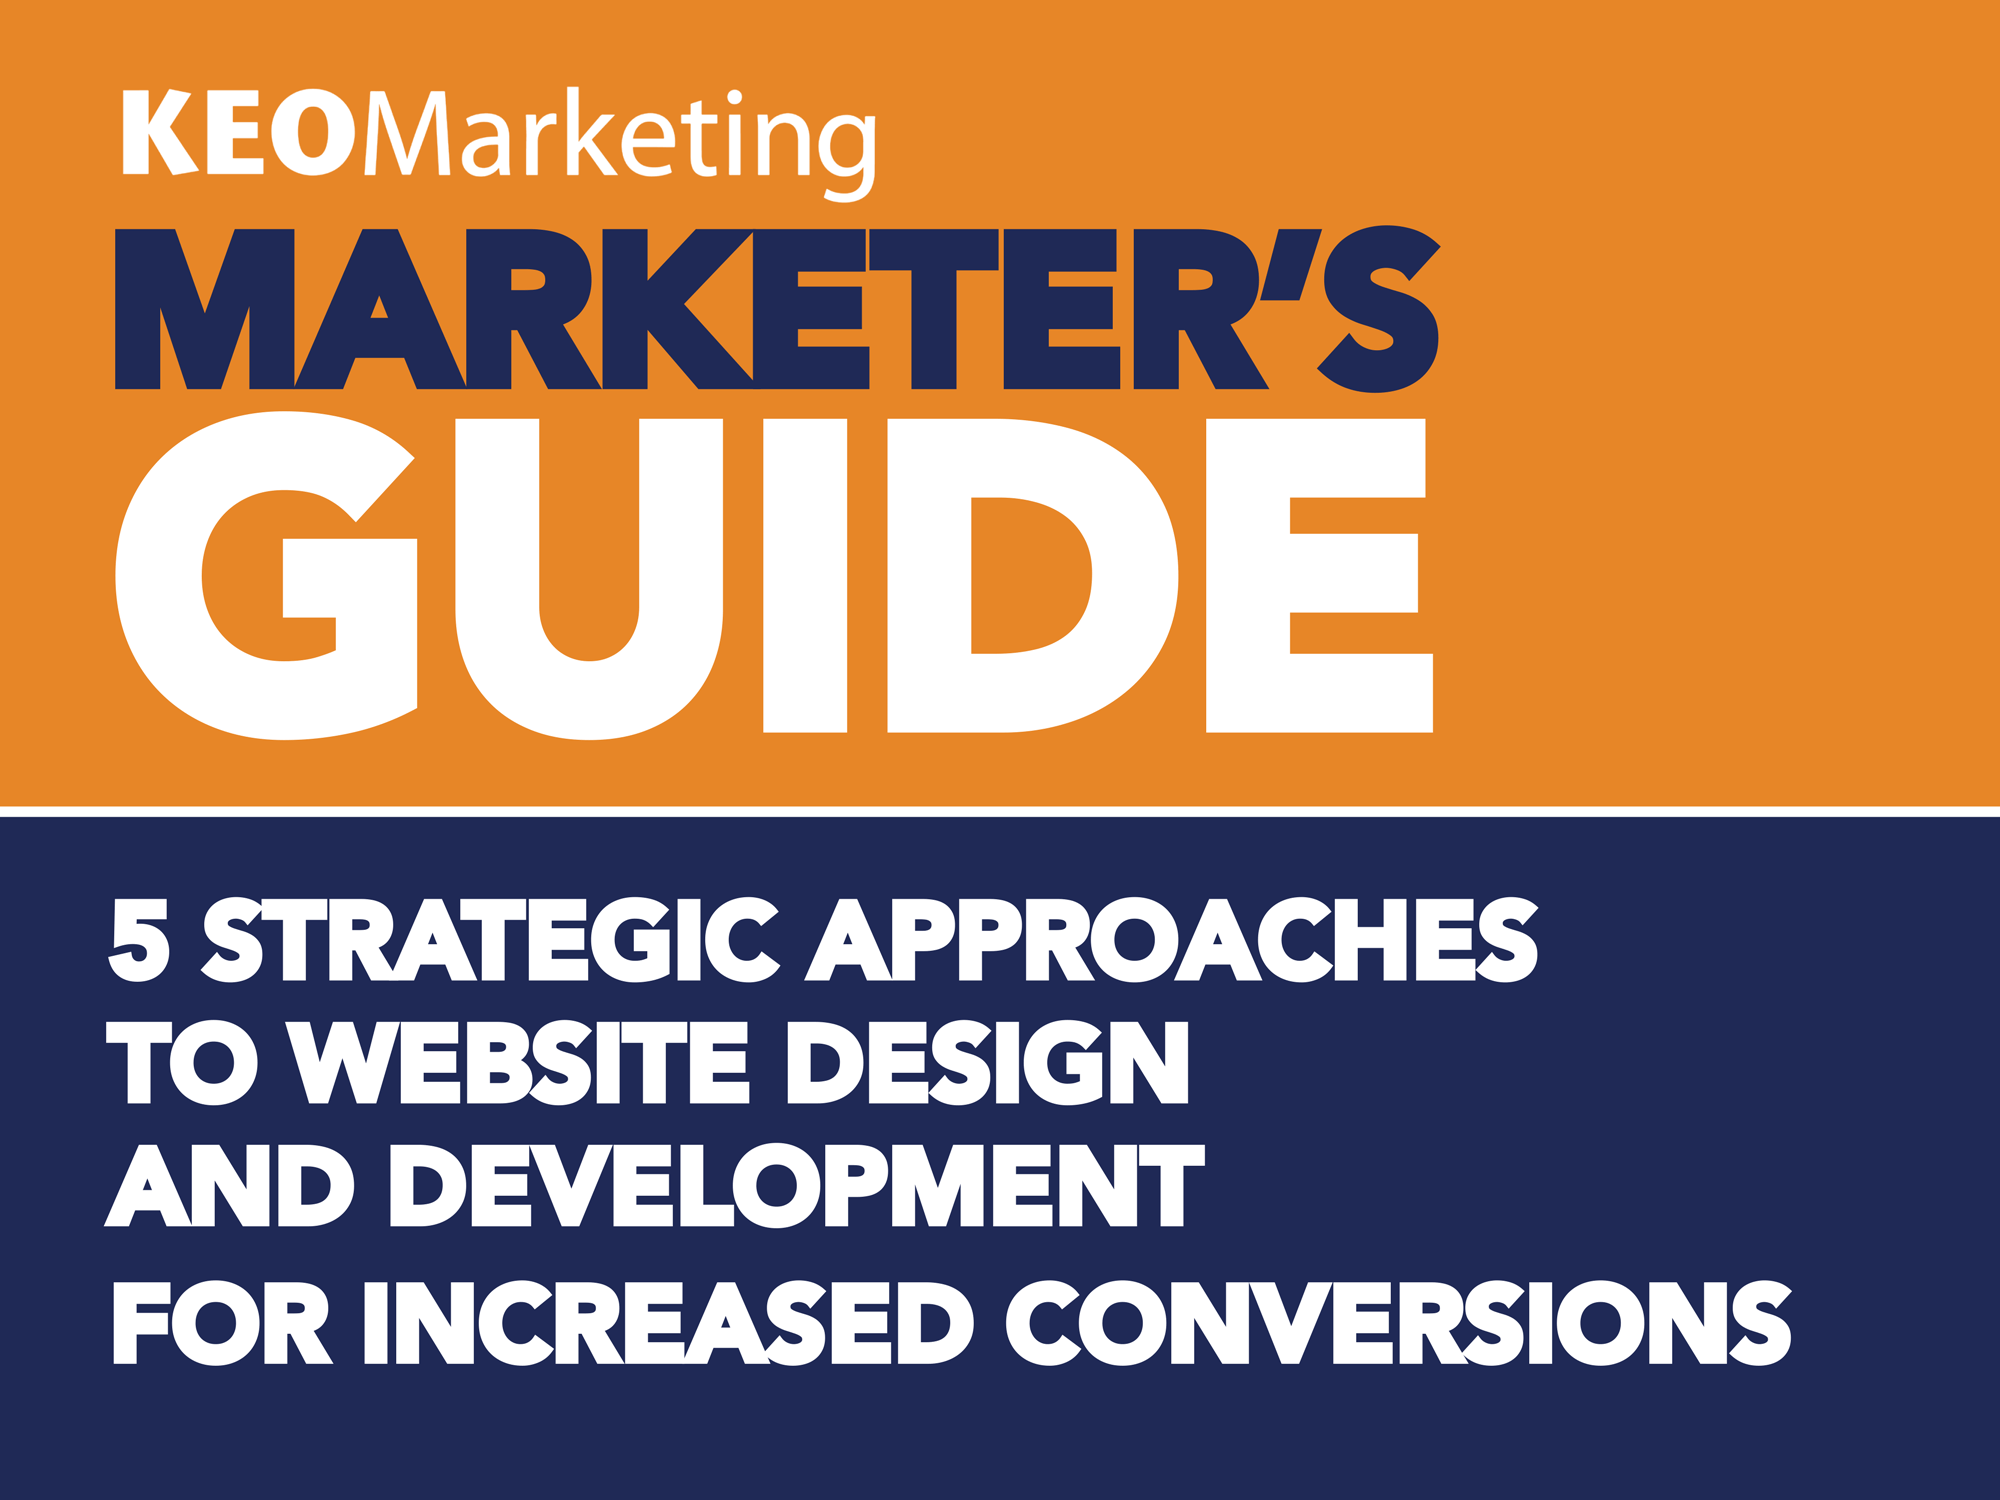 KEOMarketing-MarketersGuide-WebDesign.pdf